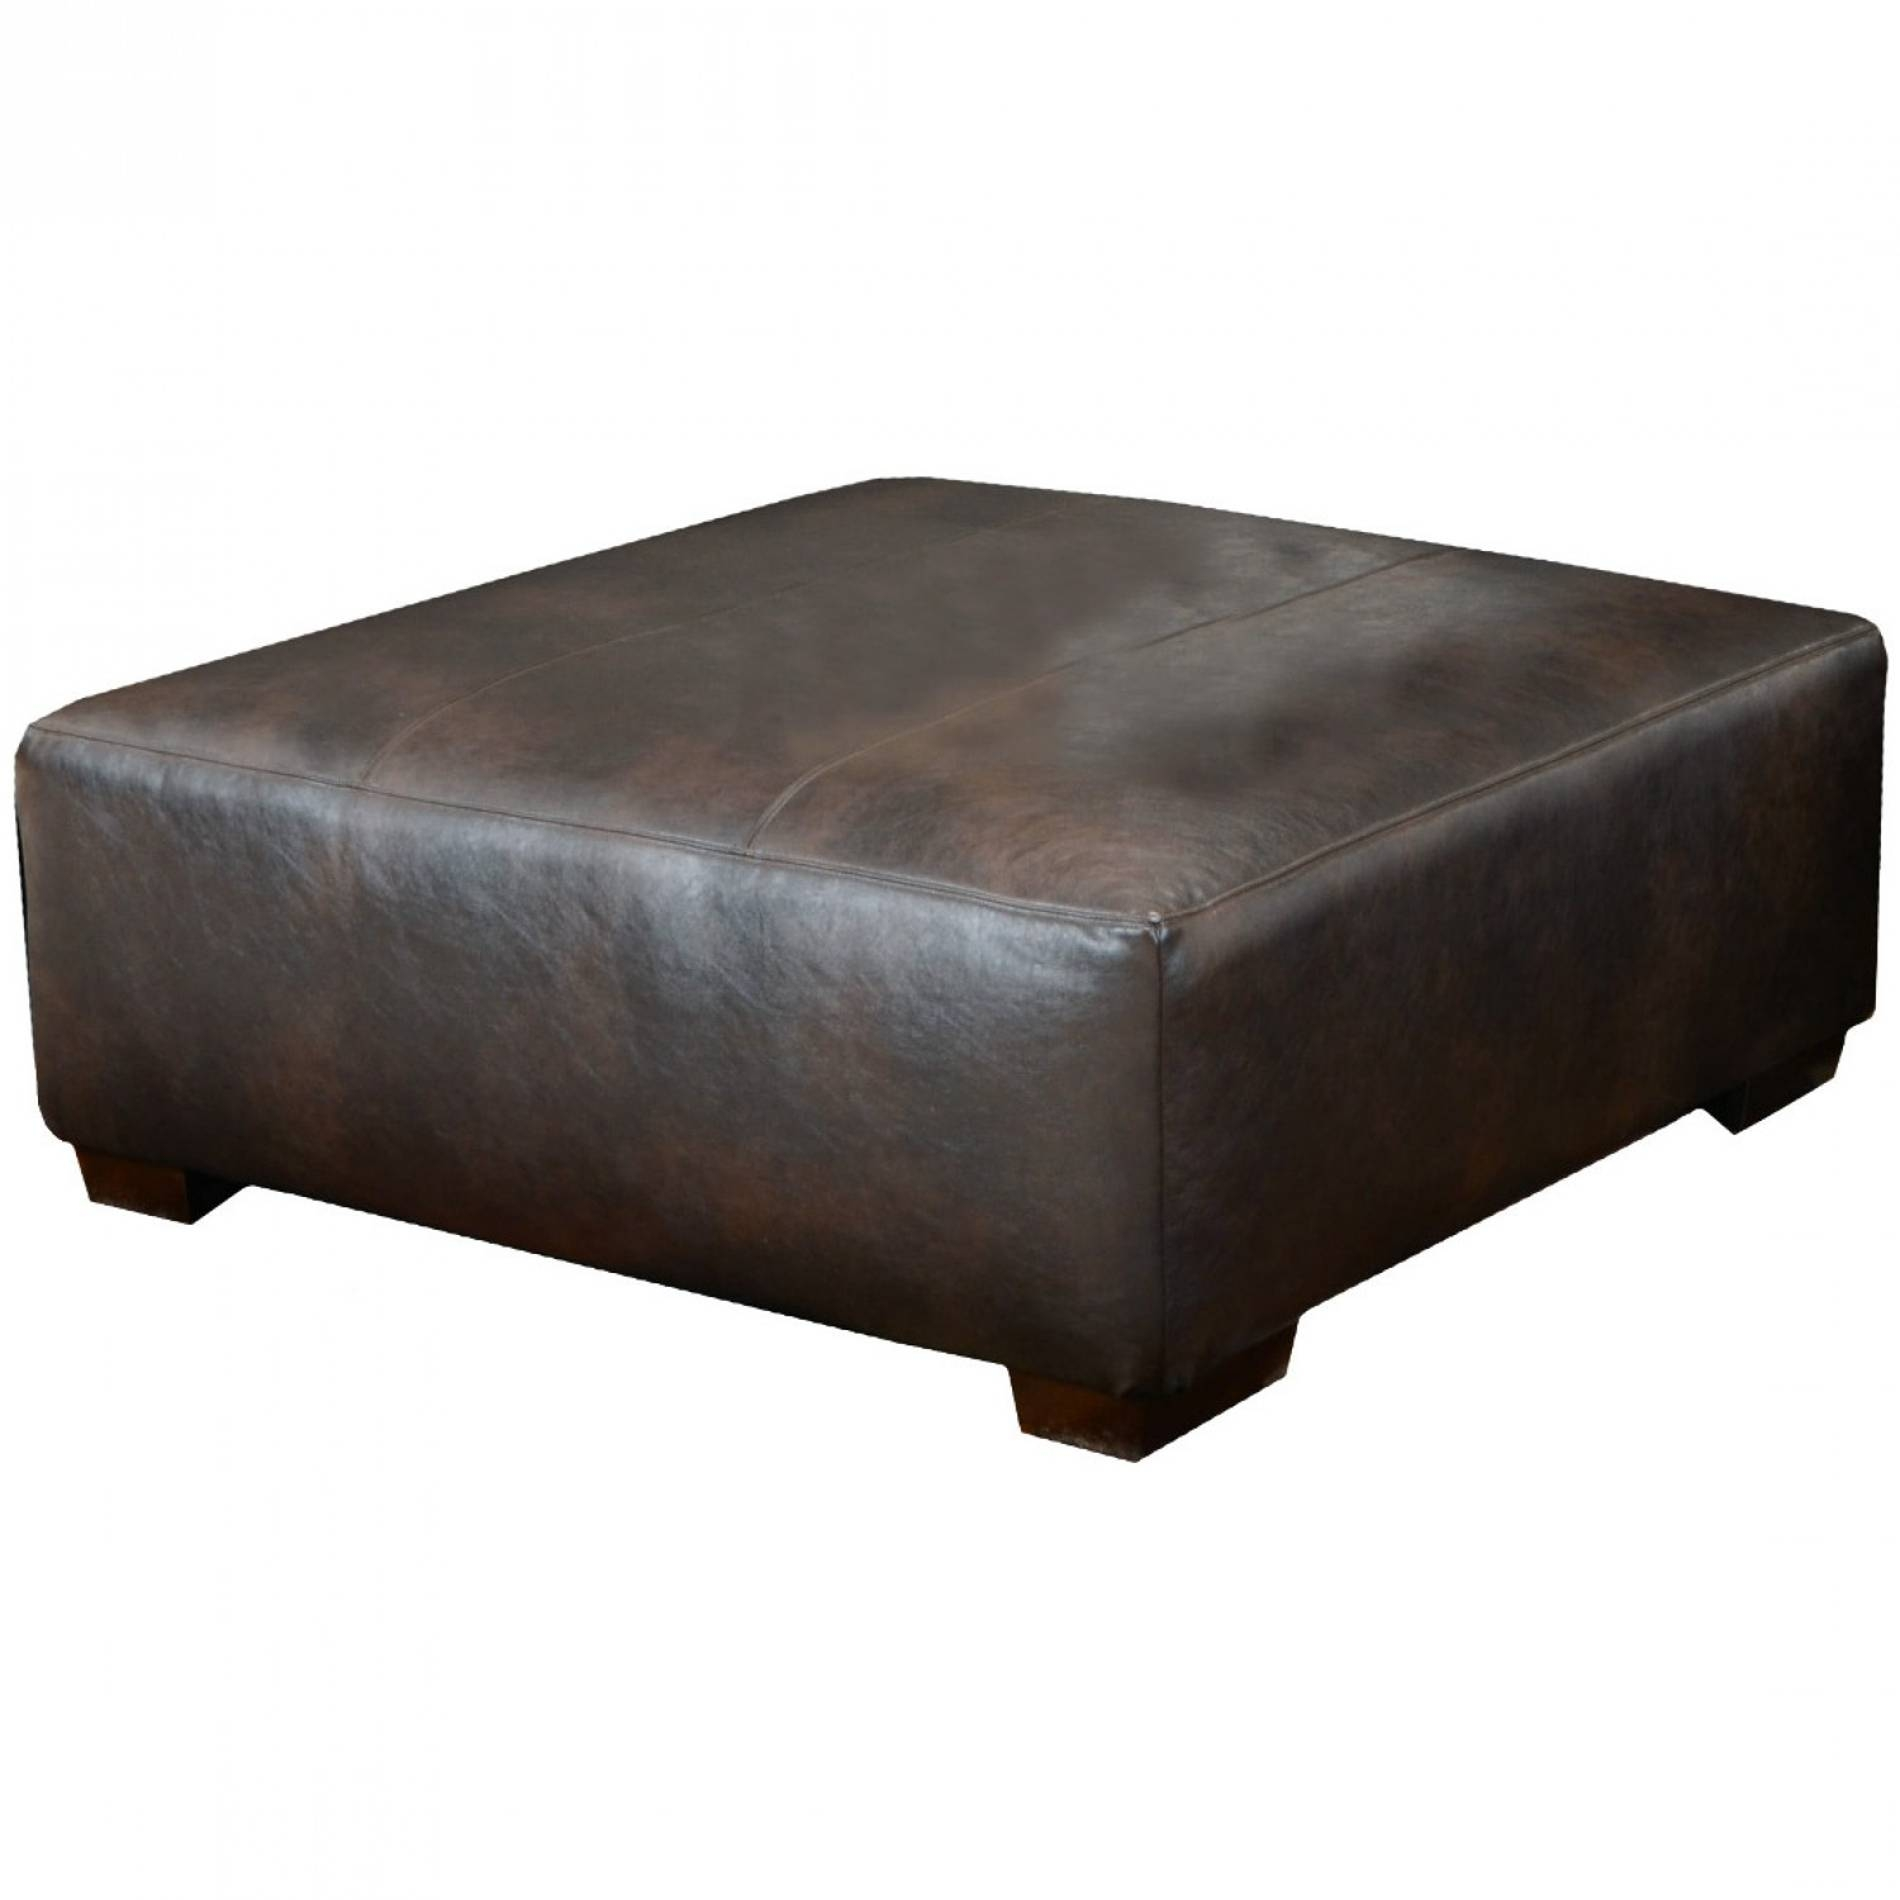 Ottomans : Astounding Abbyson Living Marseille Bicast Leather In Coffee Tables With Seating And Storage (View 21 of 30)